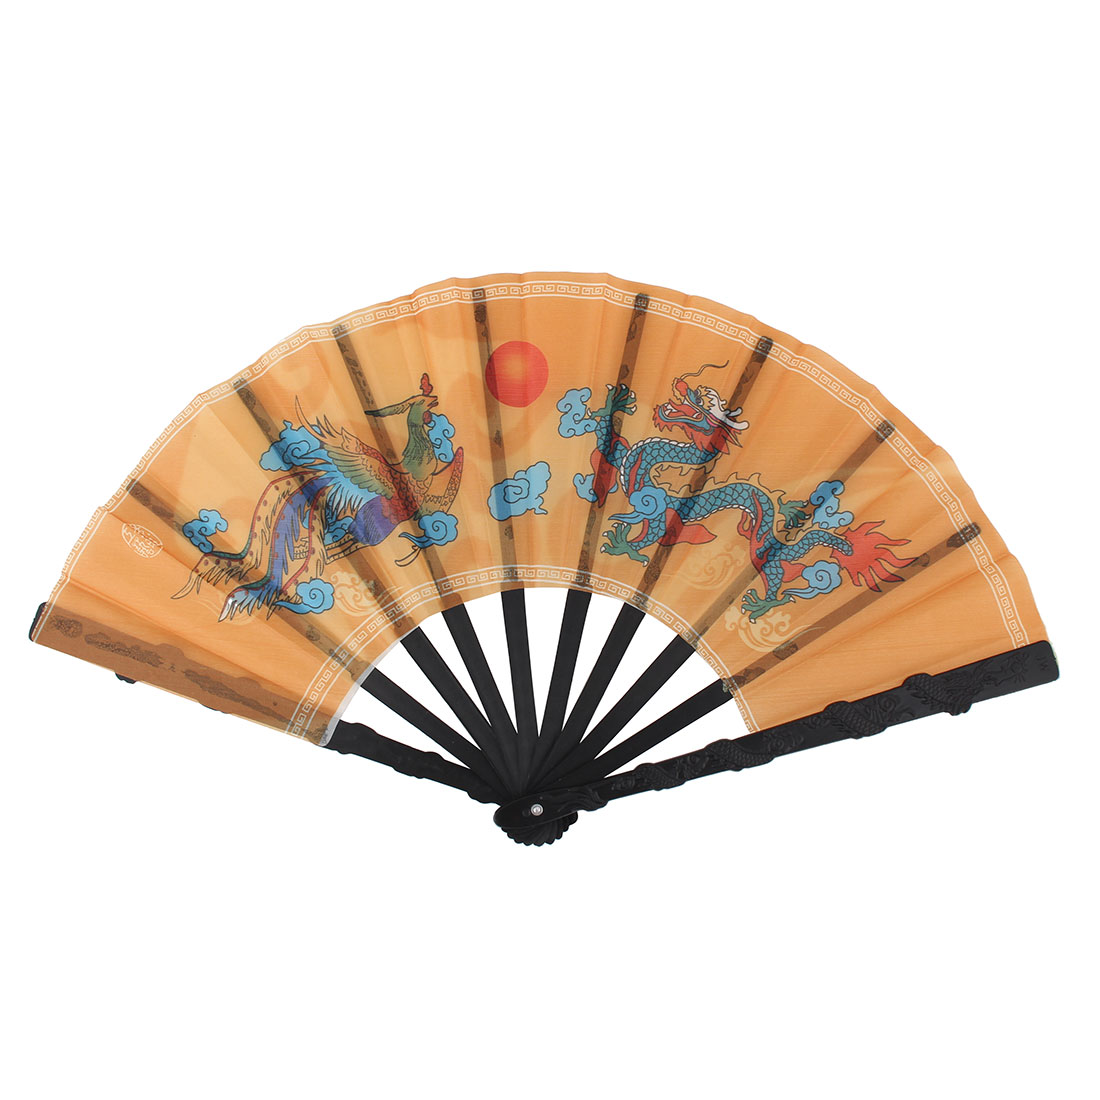 Fabric Dragon Pattern Chinese Ancientry Style Cooling Handheld Folding Fan